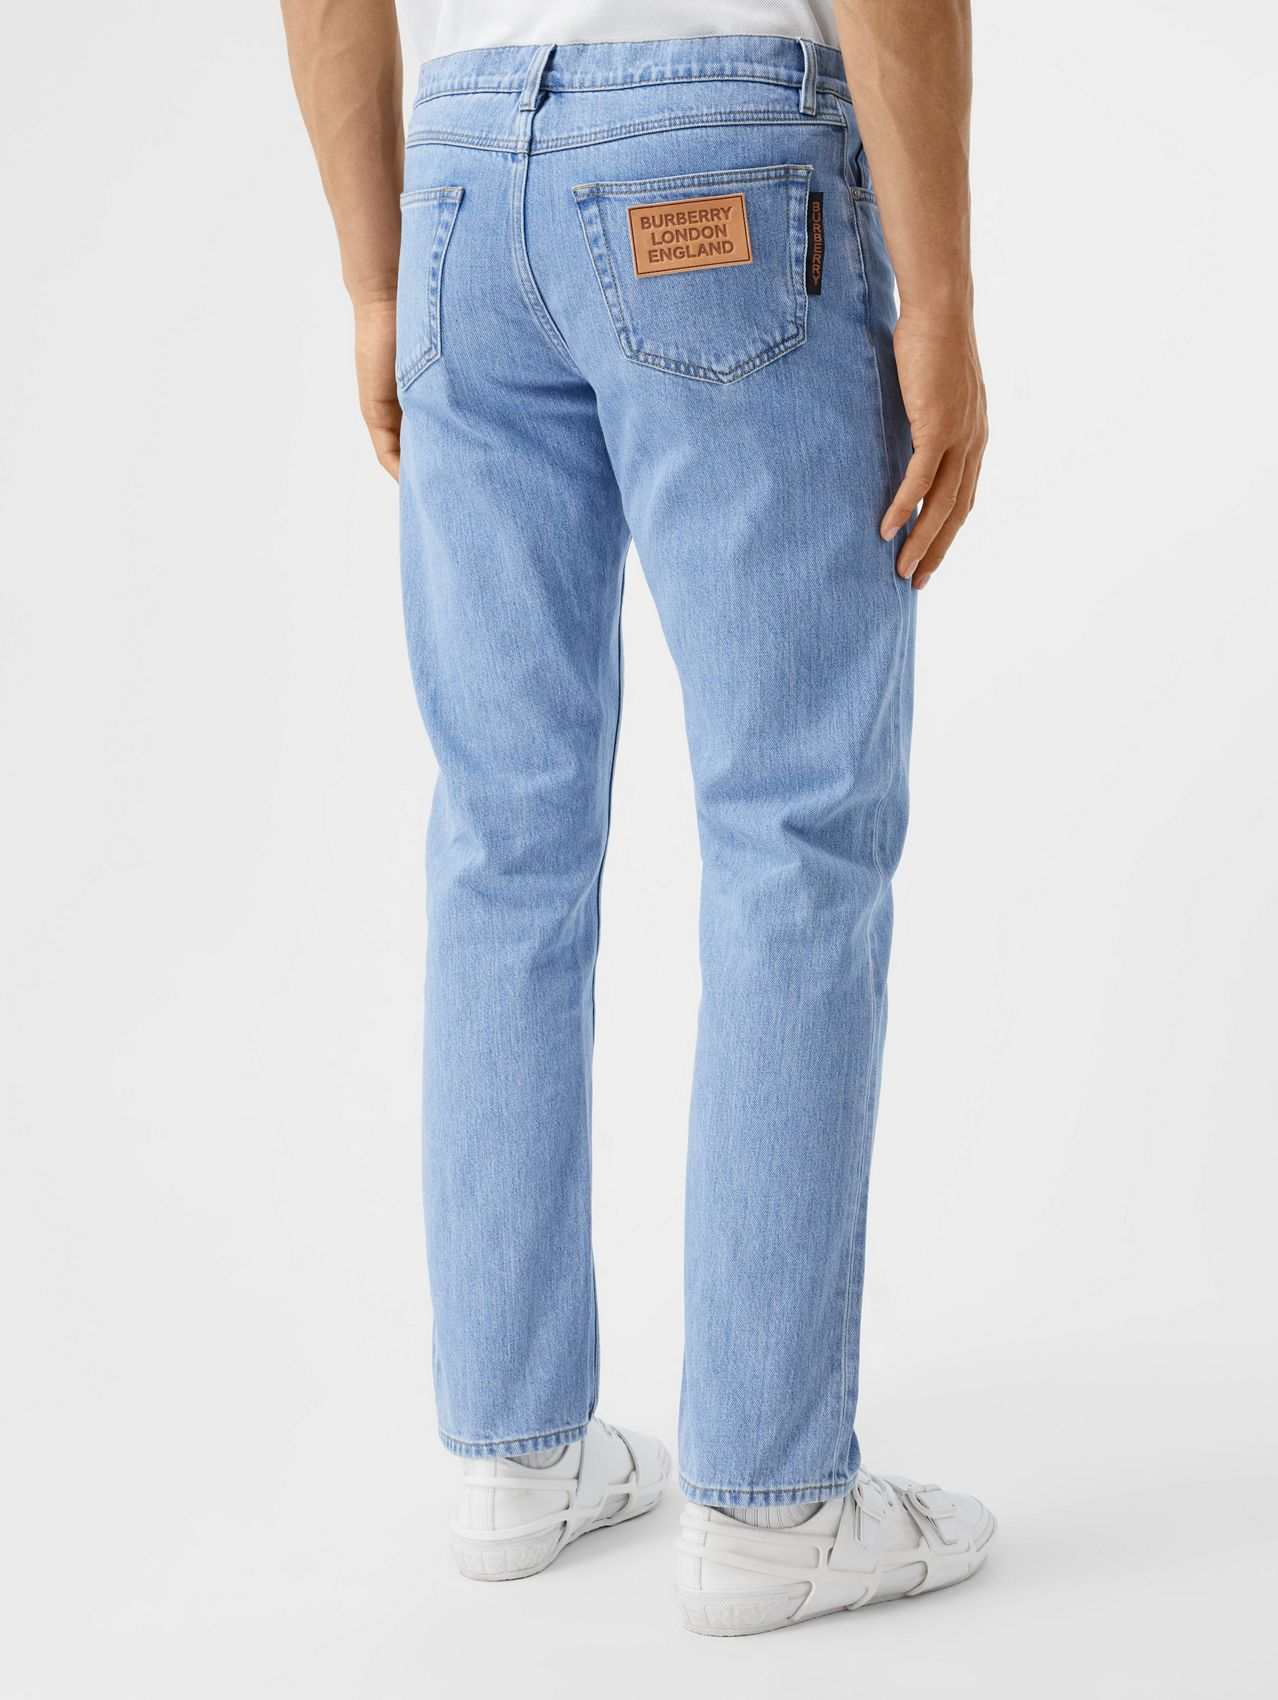 Straight Fit Japanese Denim Jeans (Light Indigo Blue)